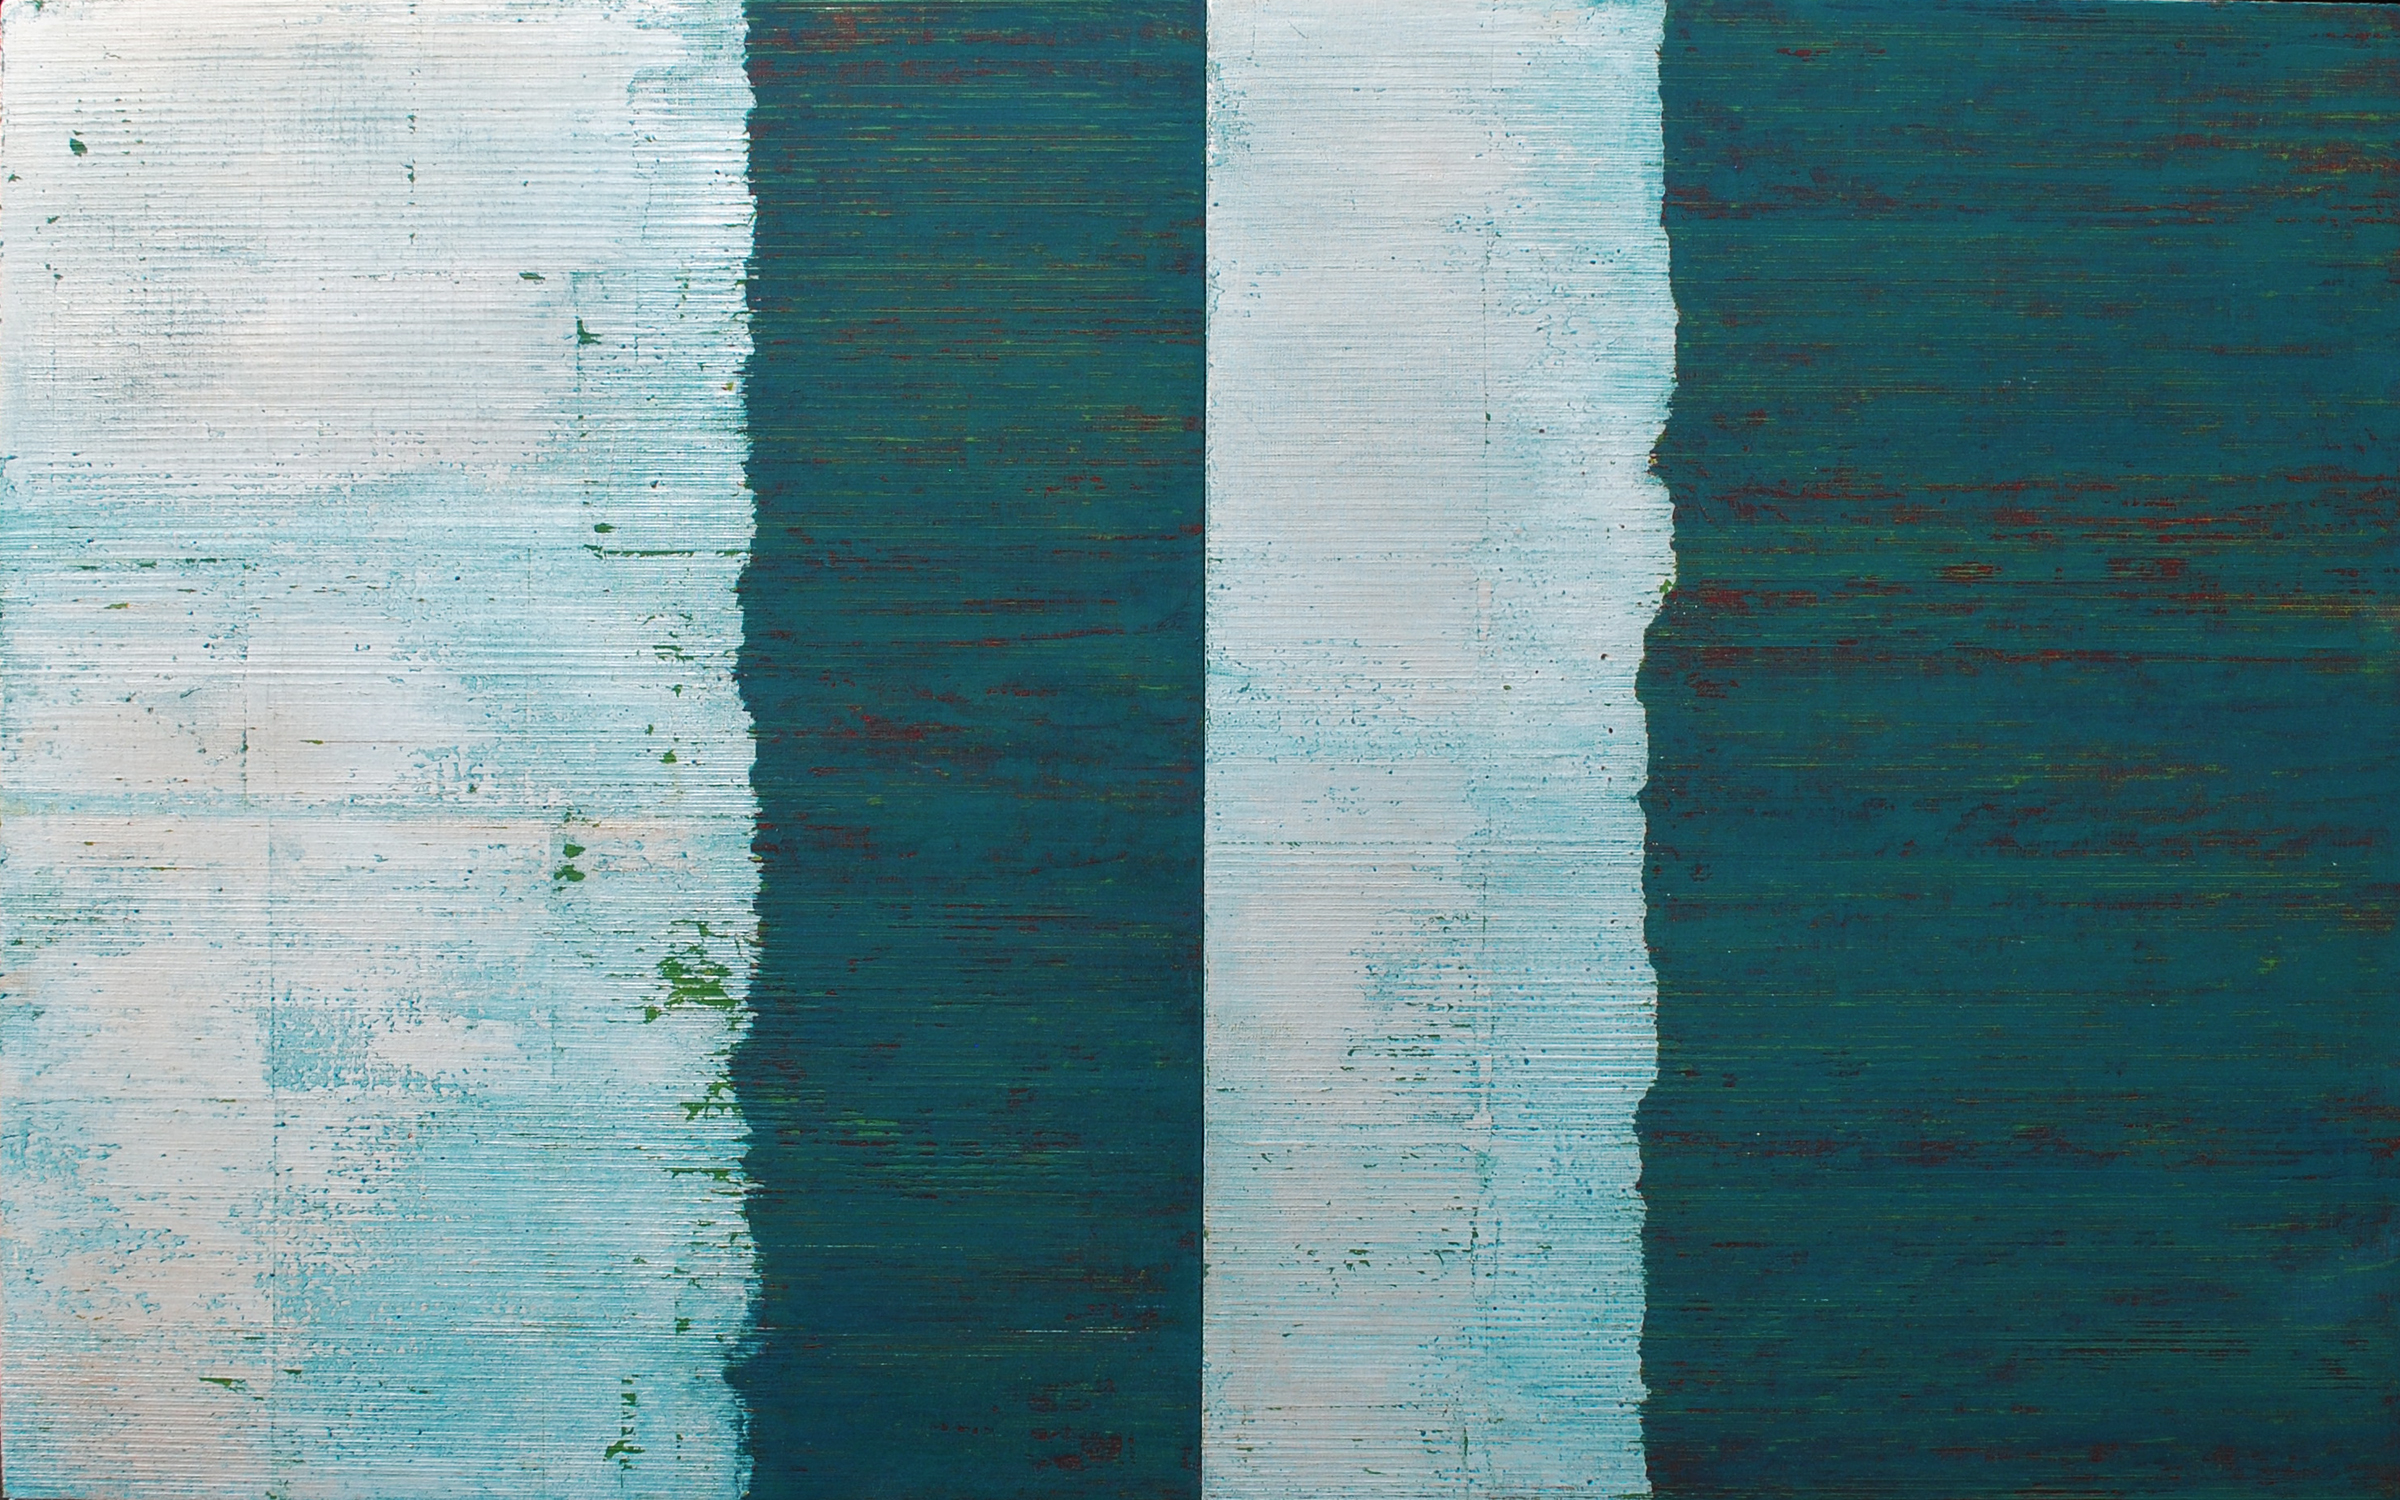 Linea Terminale: 3.13, 2013, Oil, silver leaf on linen over panels, 20 x 32 inches.